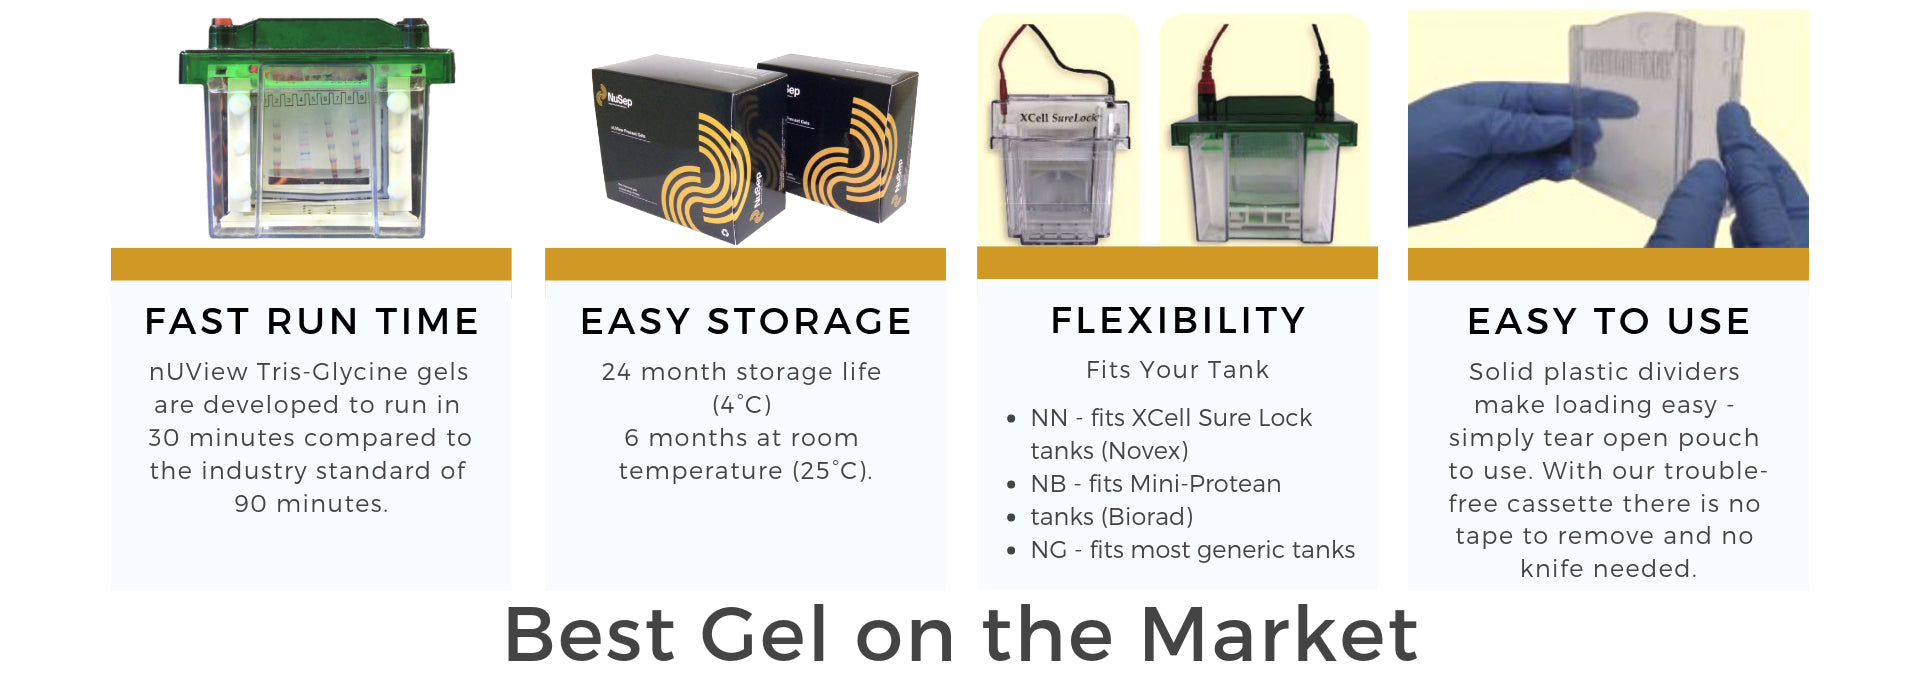 Best Precast Gel on the Market - fast run time, long storage life, fits your tank, and easy to use